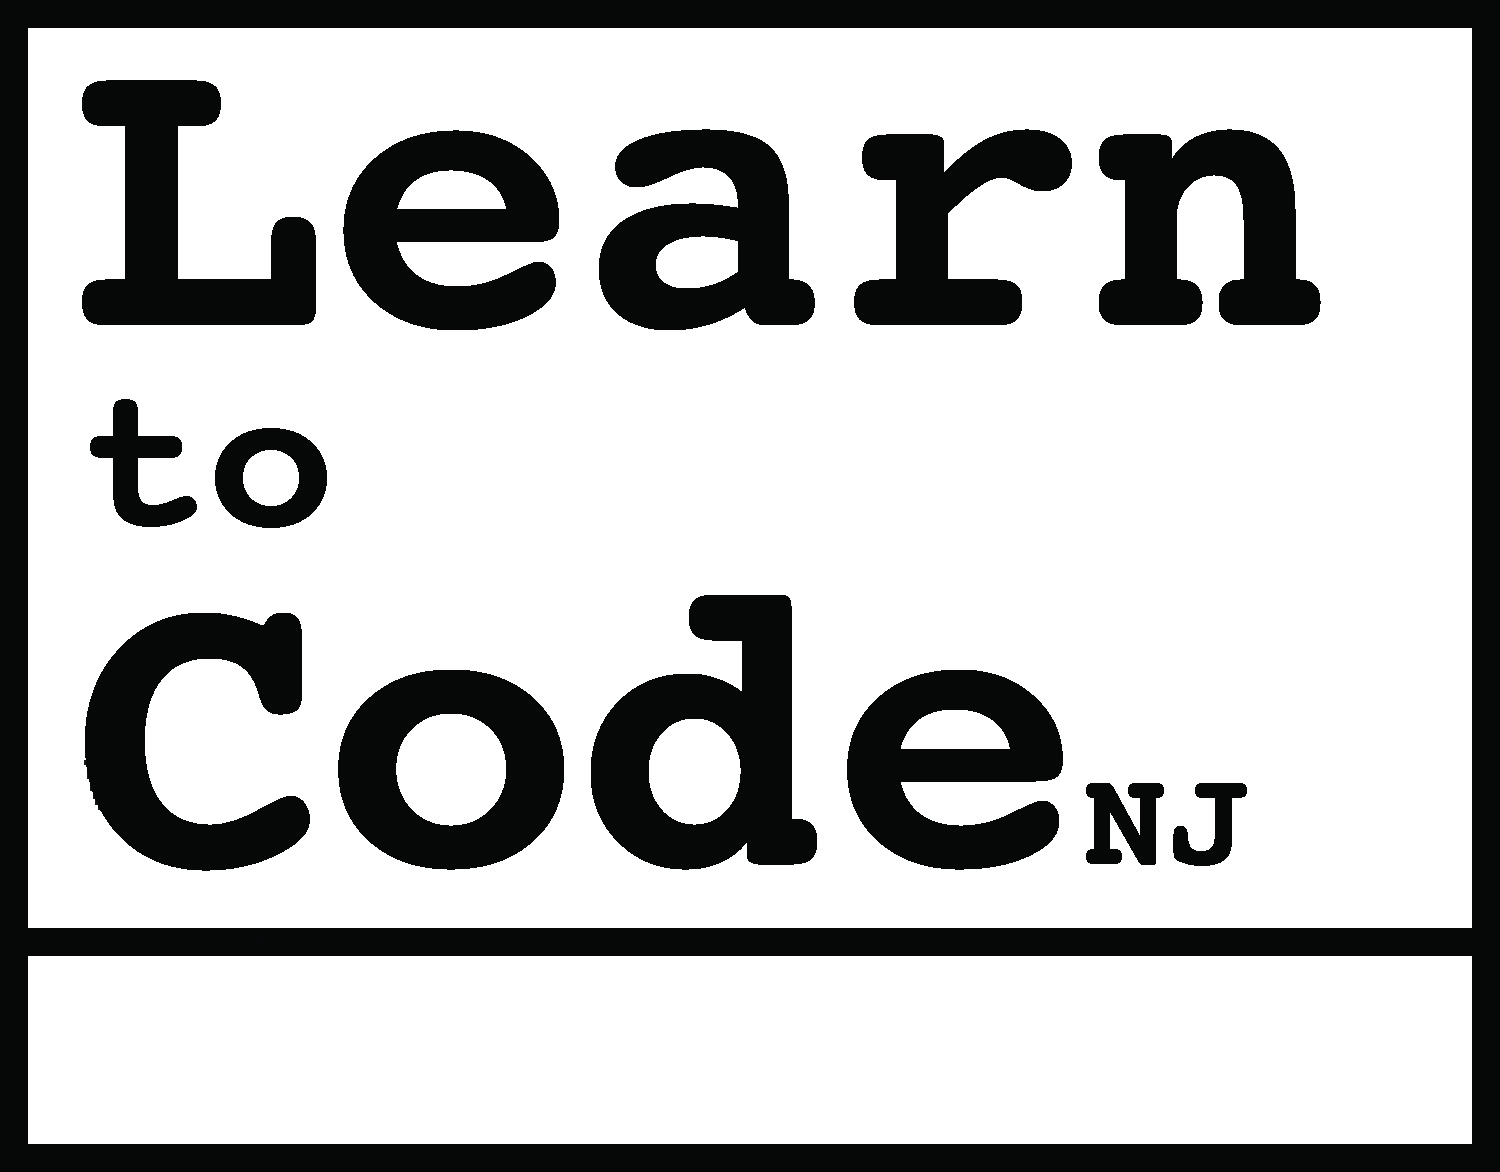 Learn to Code NJ